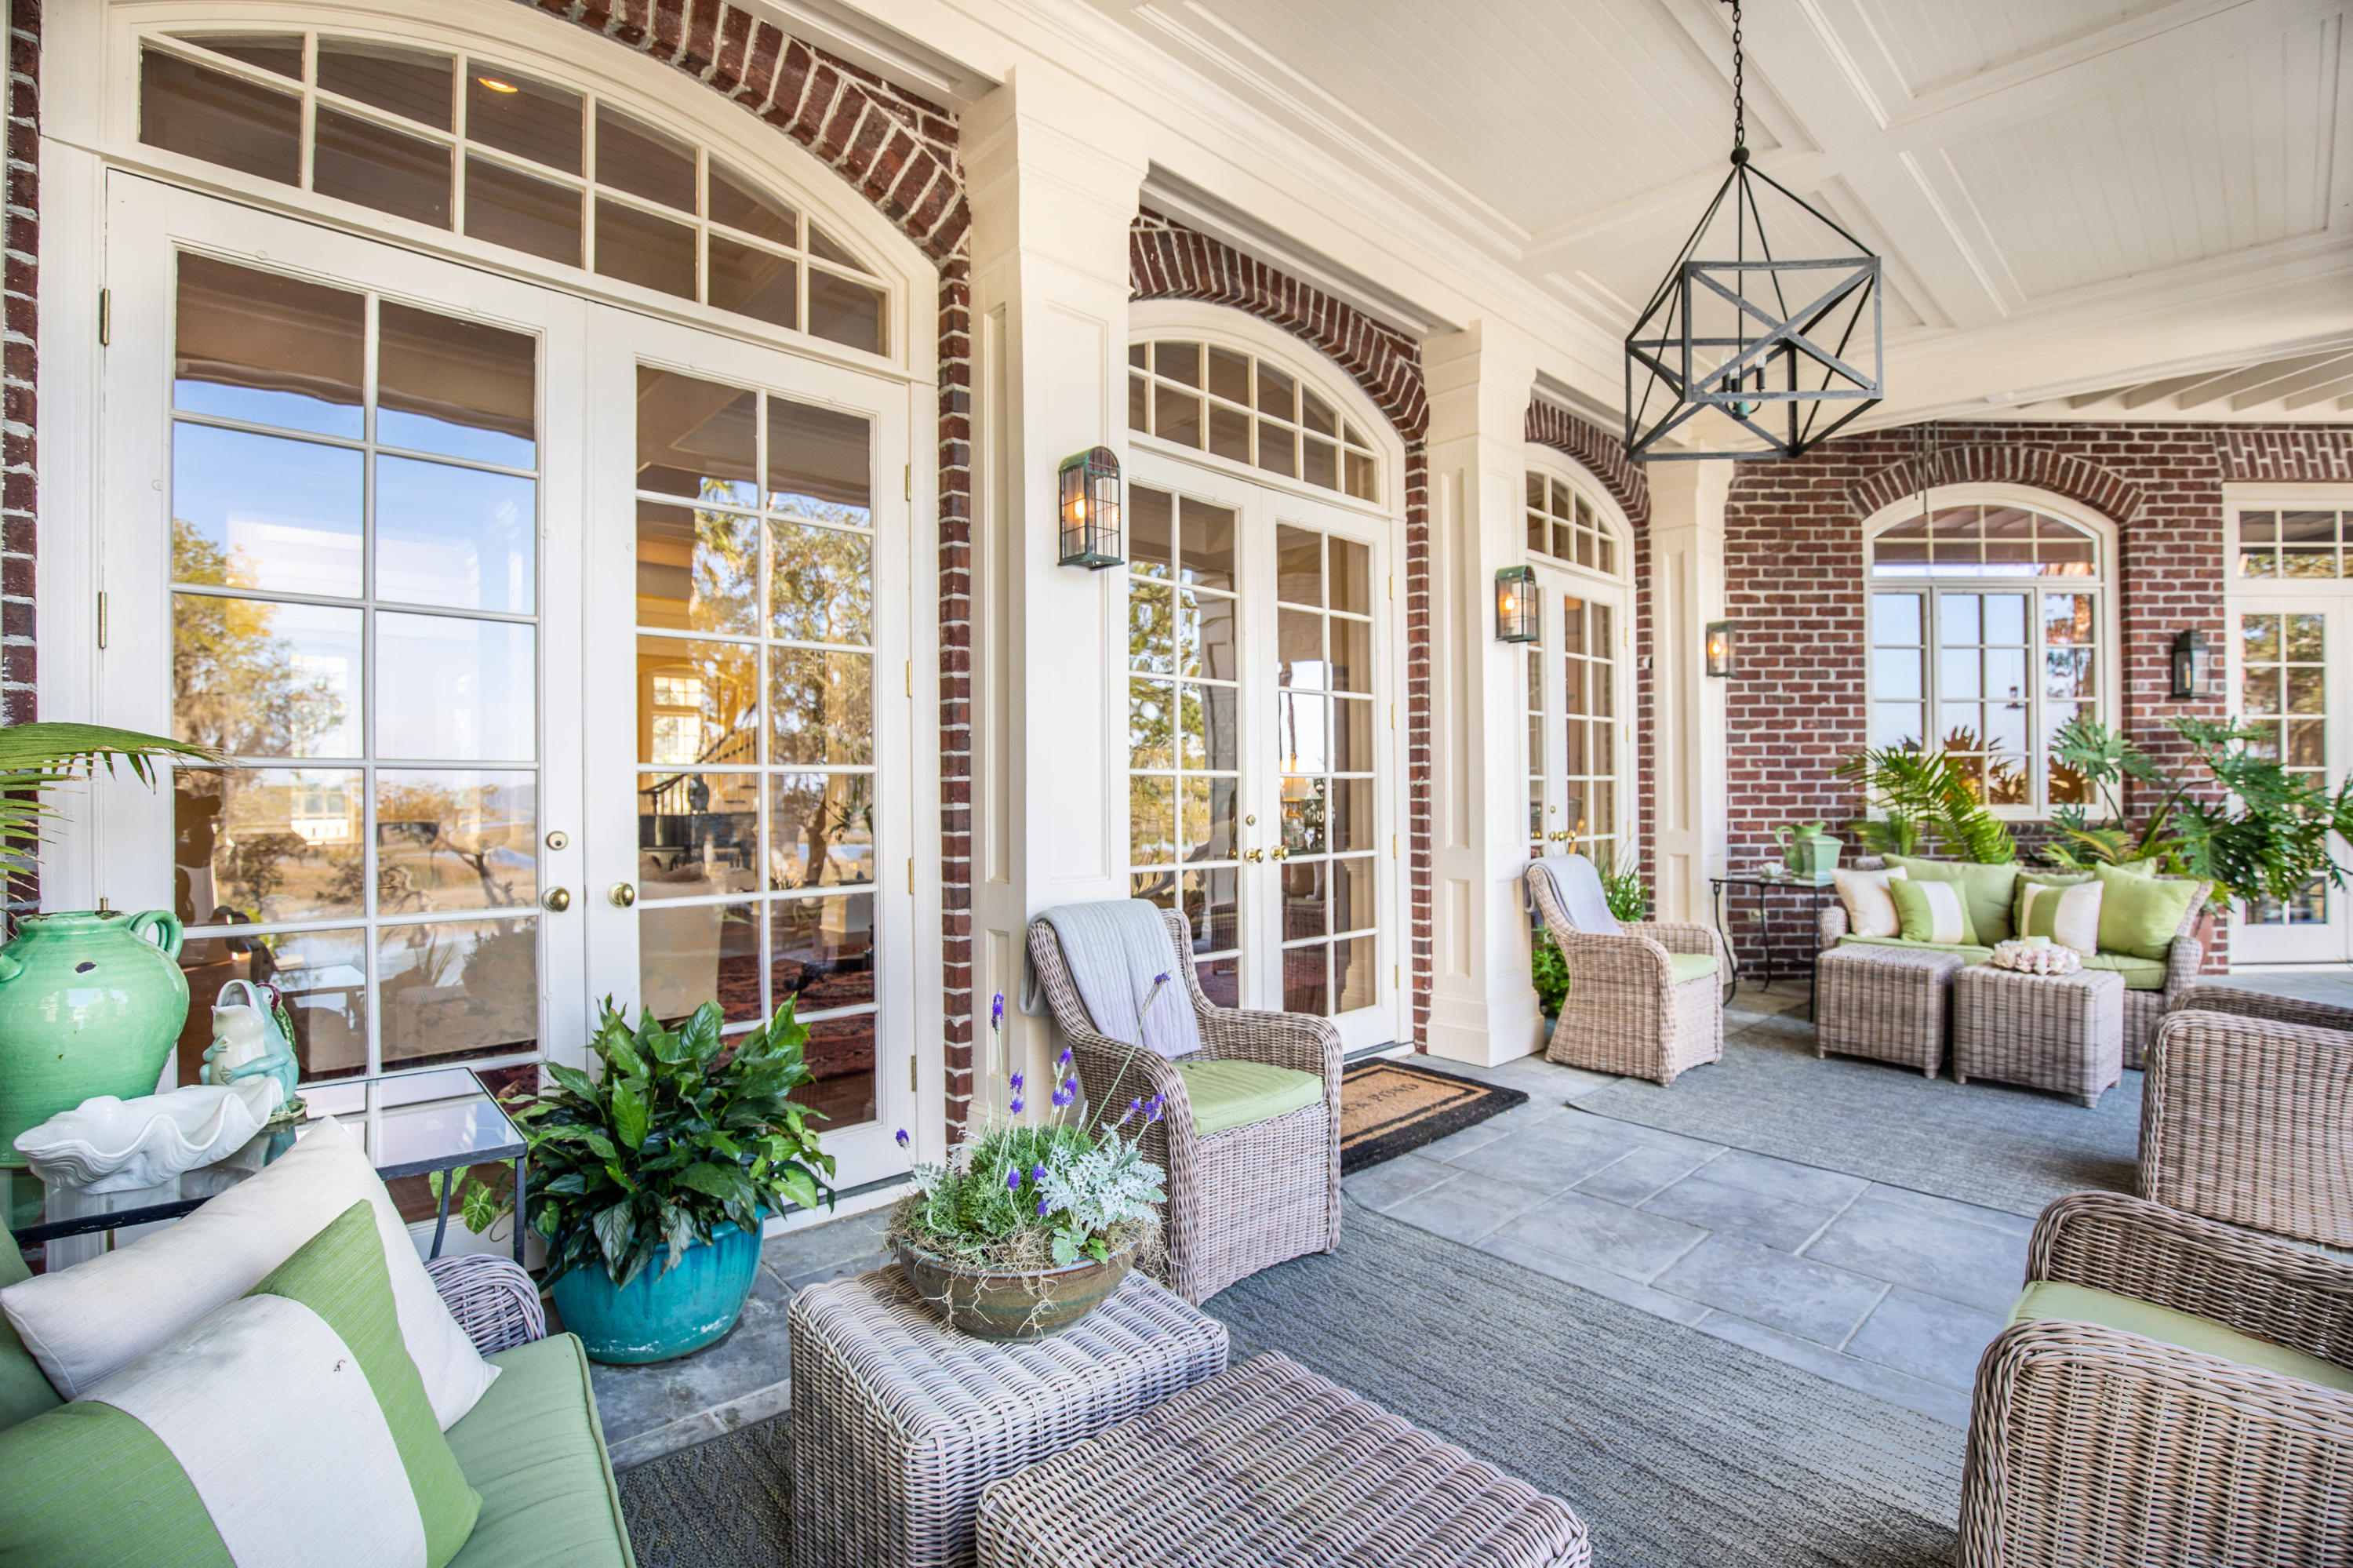 Ravens Bluff Homes For Sale - 5150 Chisolm, Johns Island, SC - 29